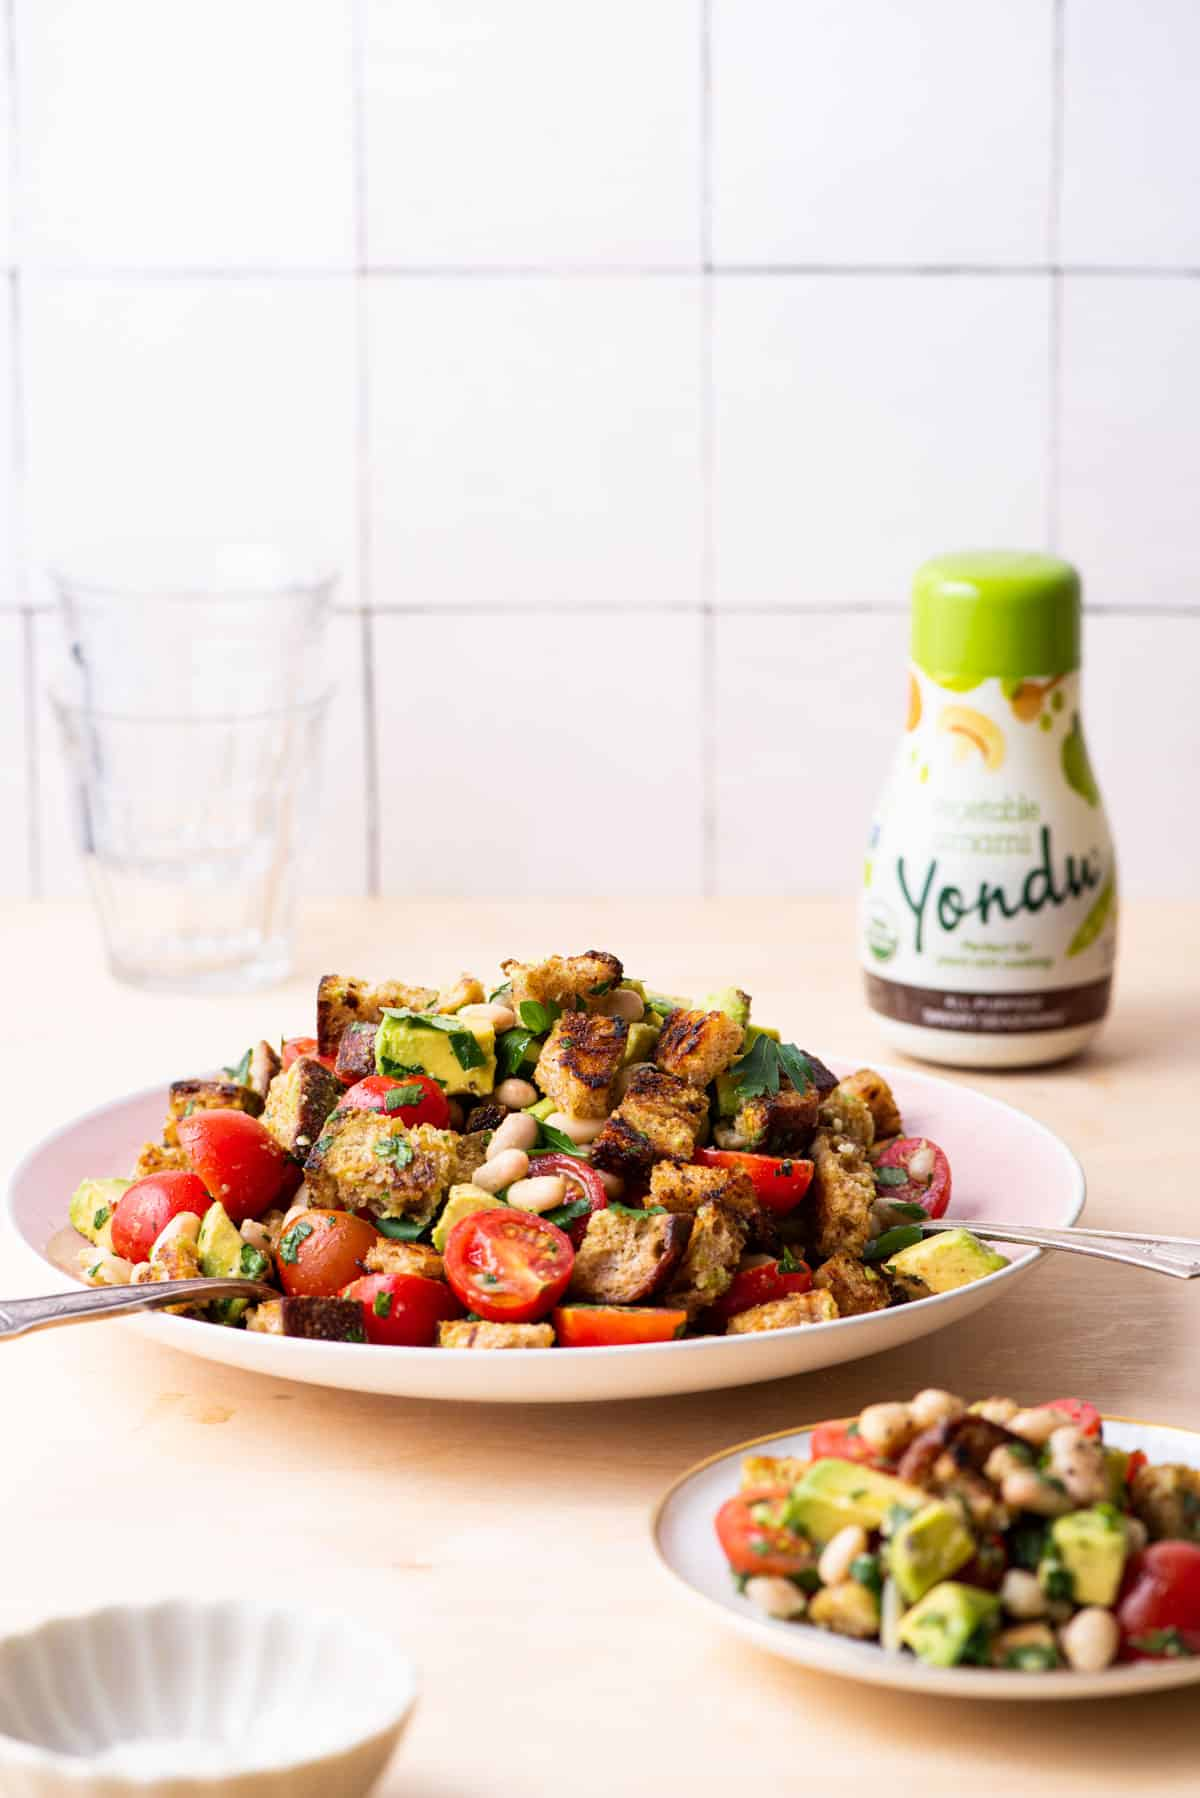 Panzanella salad on a wooden counter next to stacked glasses and a bottle of Yondu.